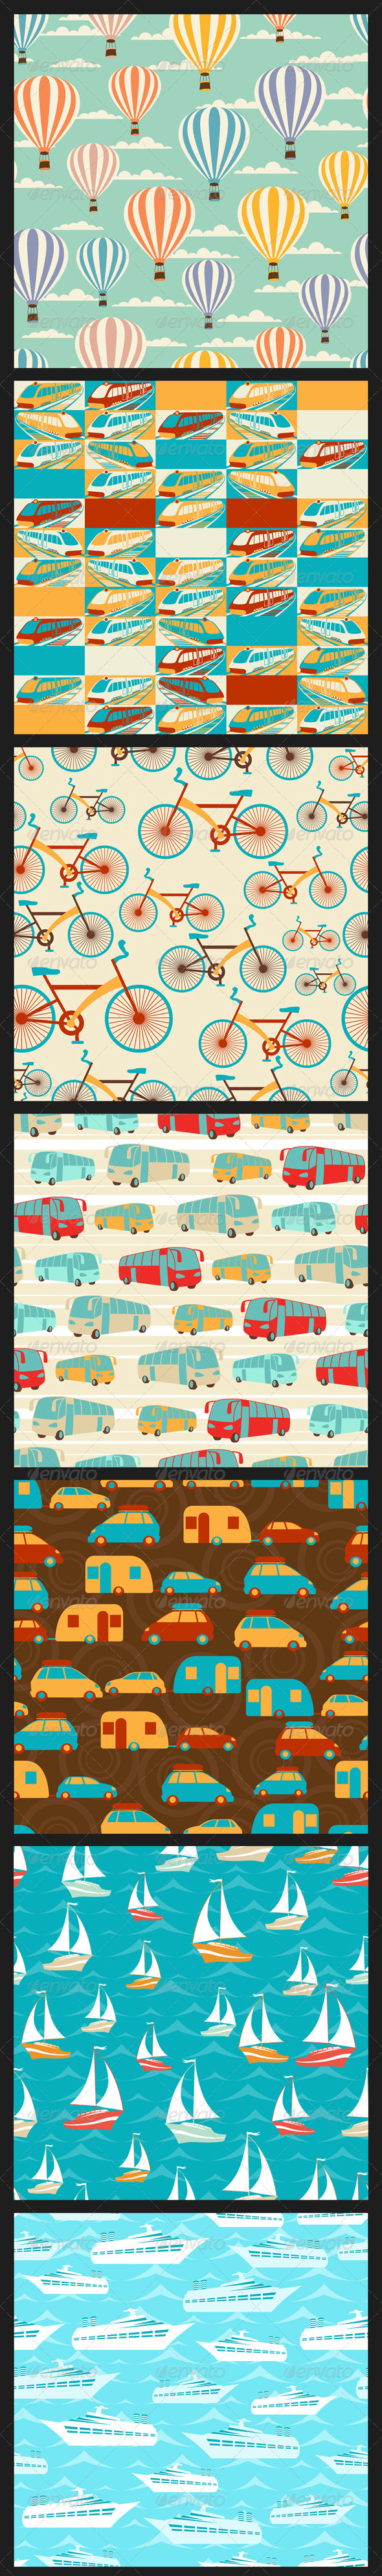 Retro Travel Seamless Patterns. - Travel Conceptual